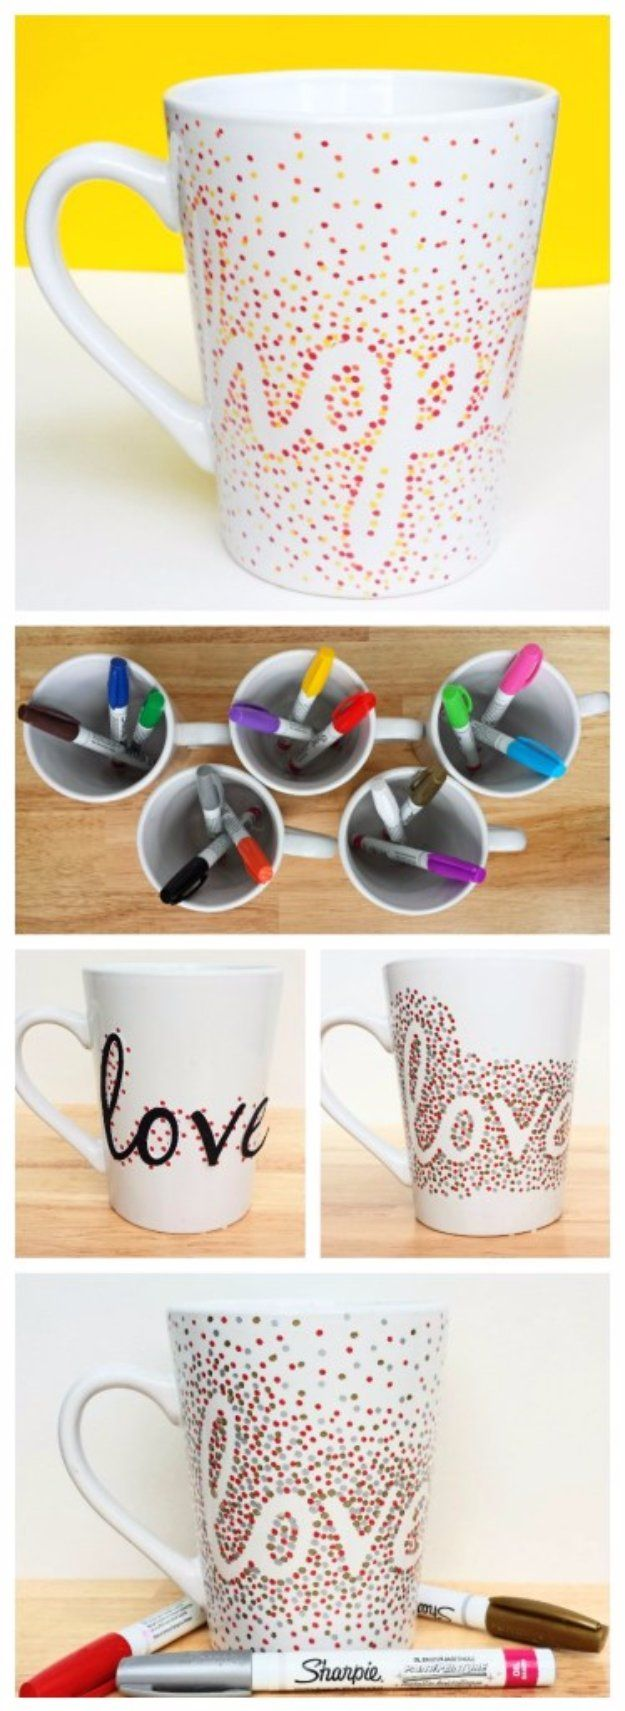 17 best ideas about crafts on pinterest craft ideas diy for Neat craft ideas